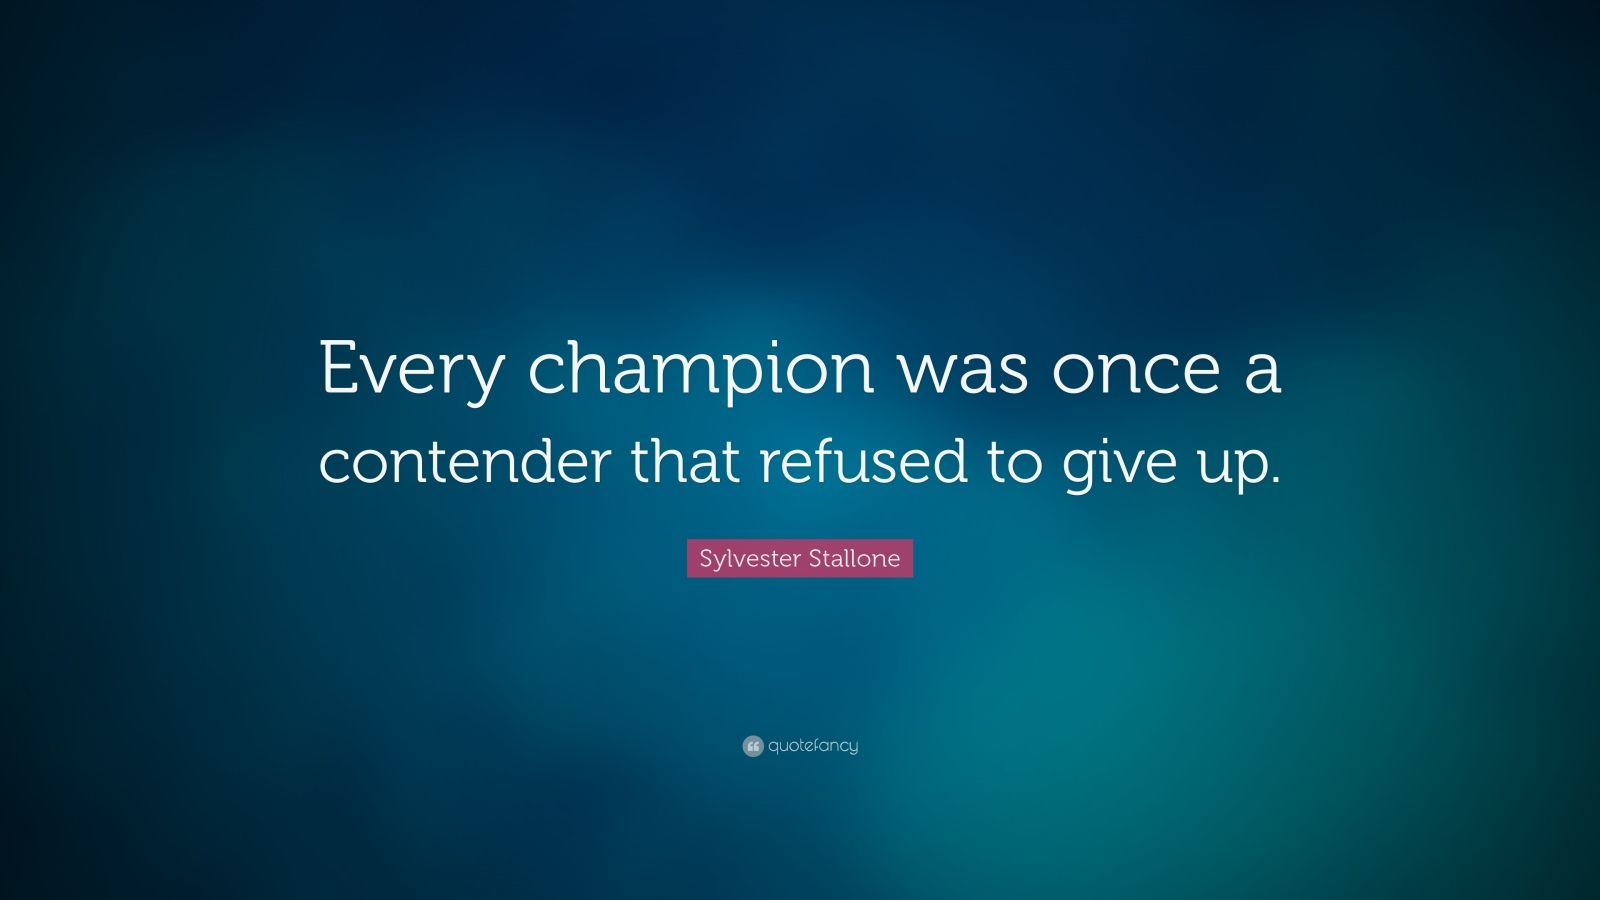 Motivational Life Quotes Wallpapers Sylvester Stallone Quote Every Champion Was Once A